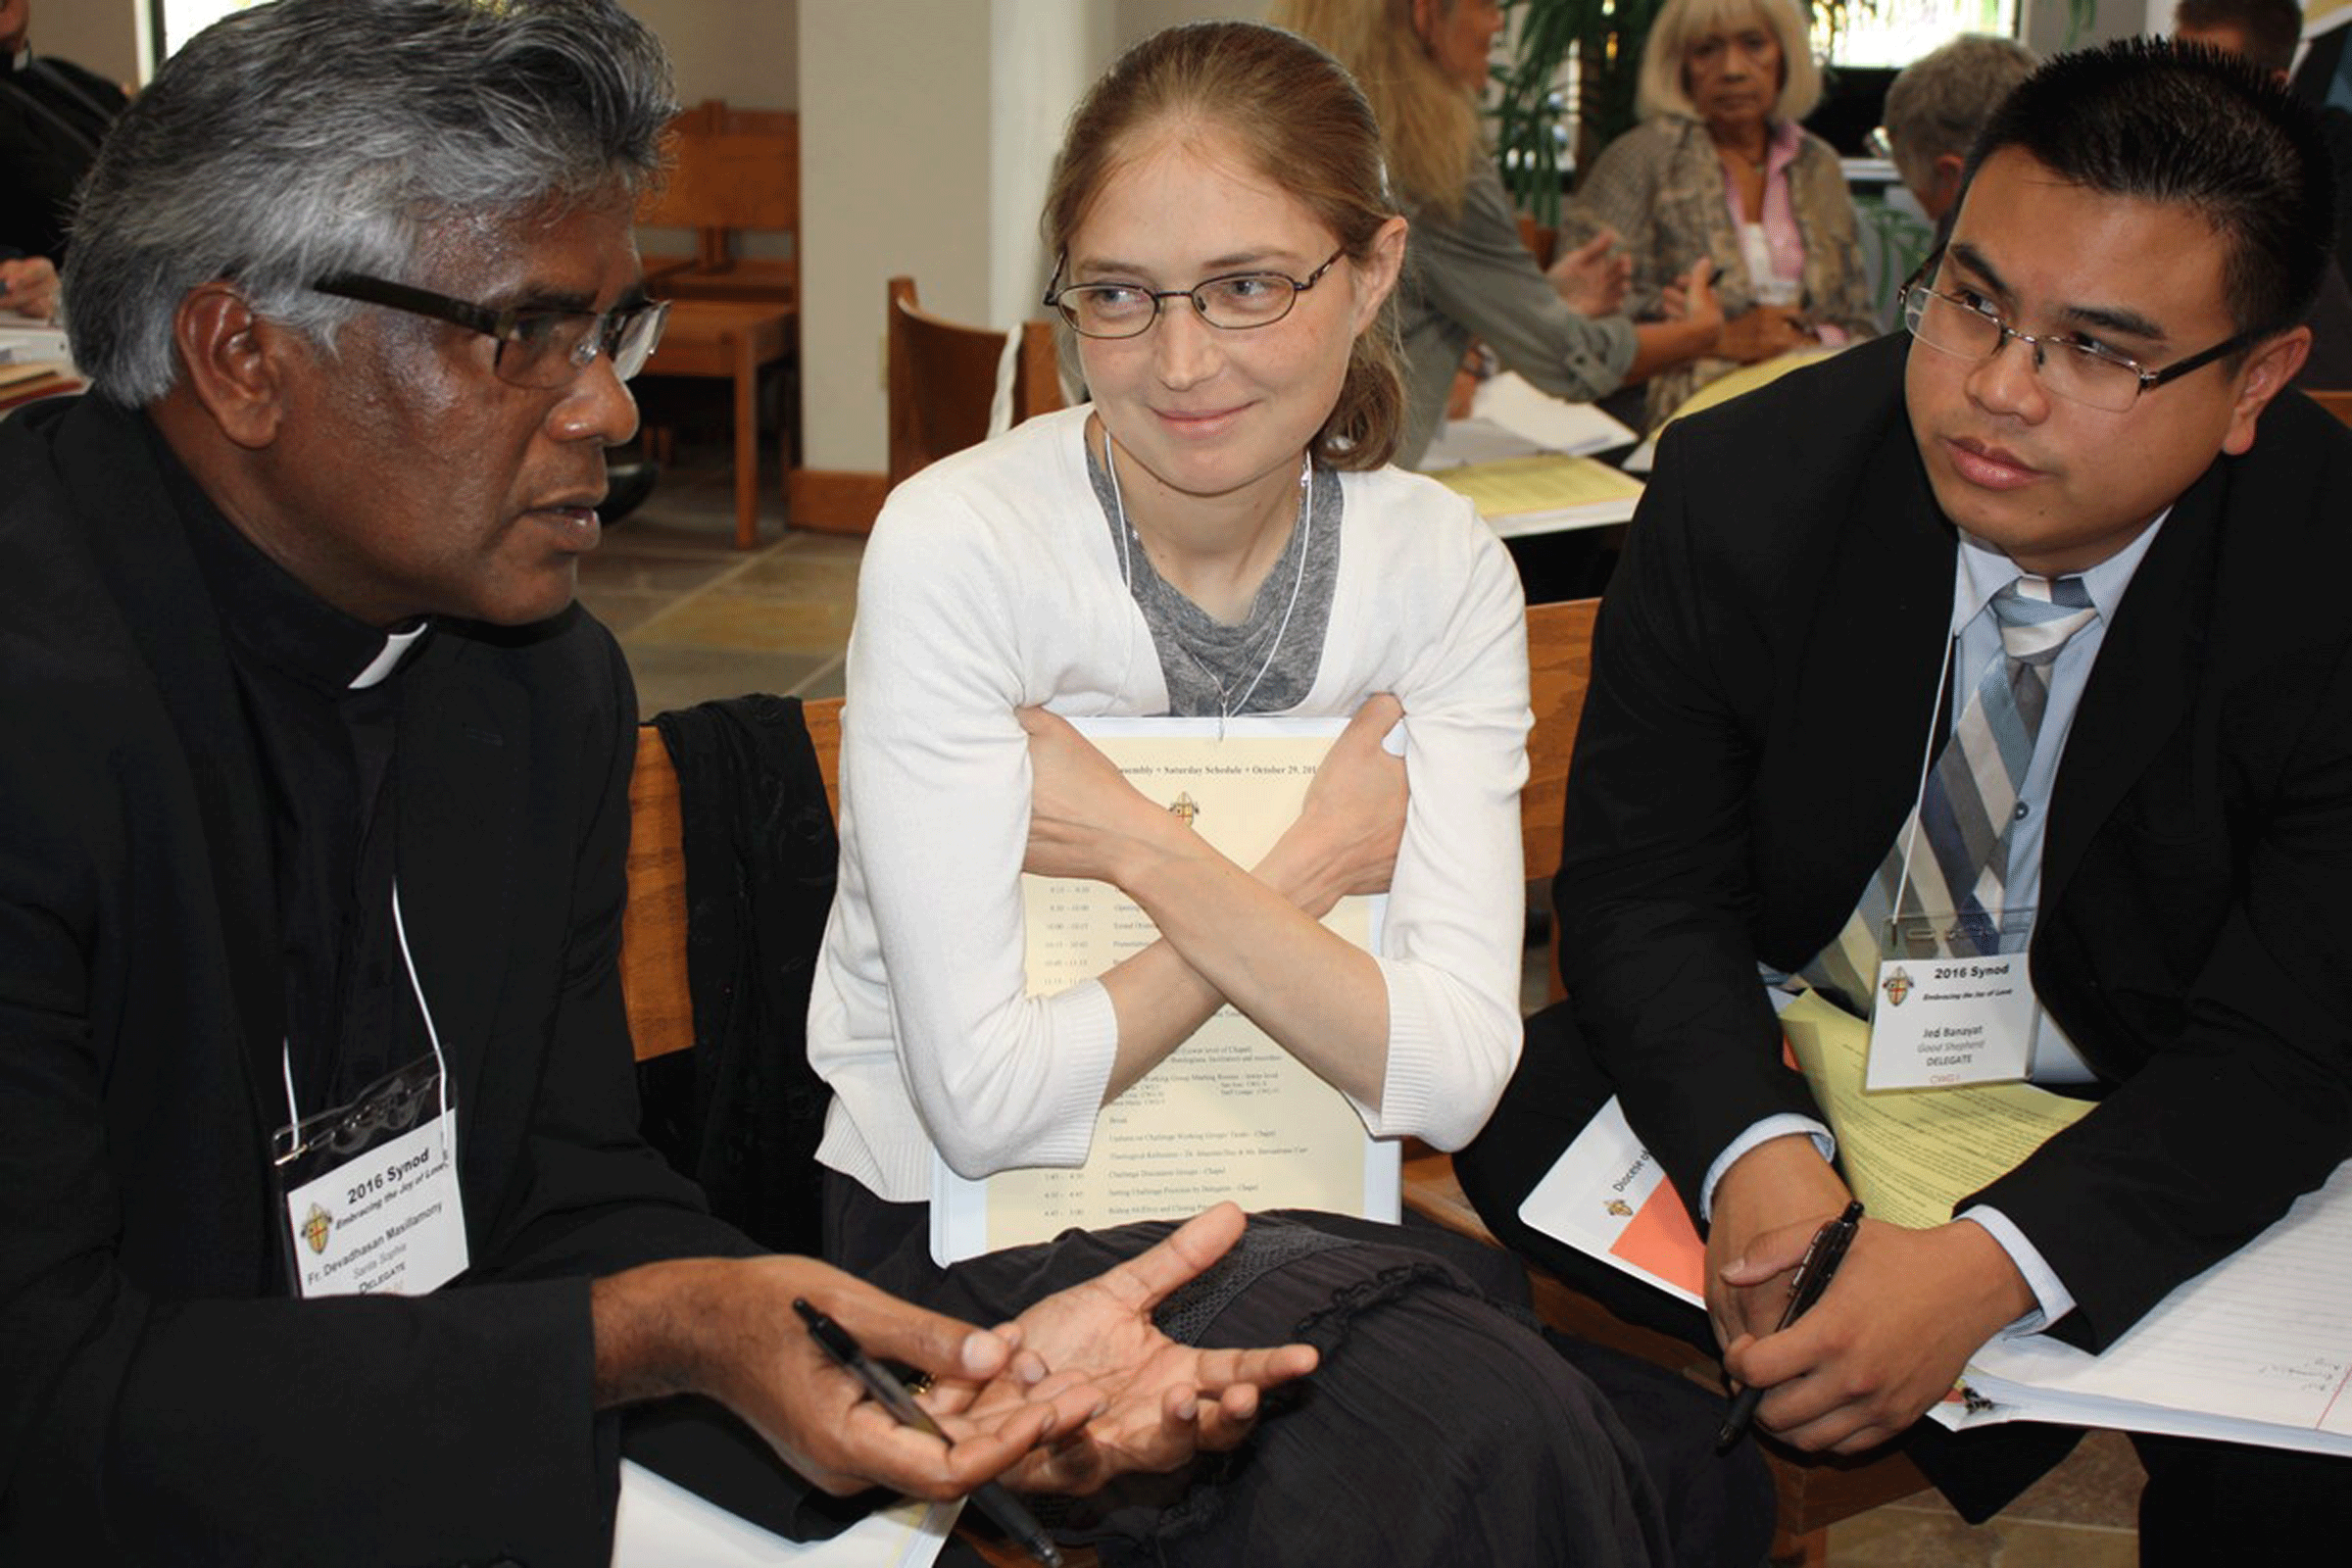 In the working groups, lay leaders, priests and theologians all met together. (Photo: courtesy of Diocese of San Diego/Aida Bustos)